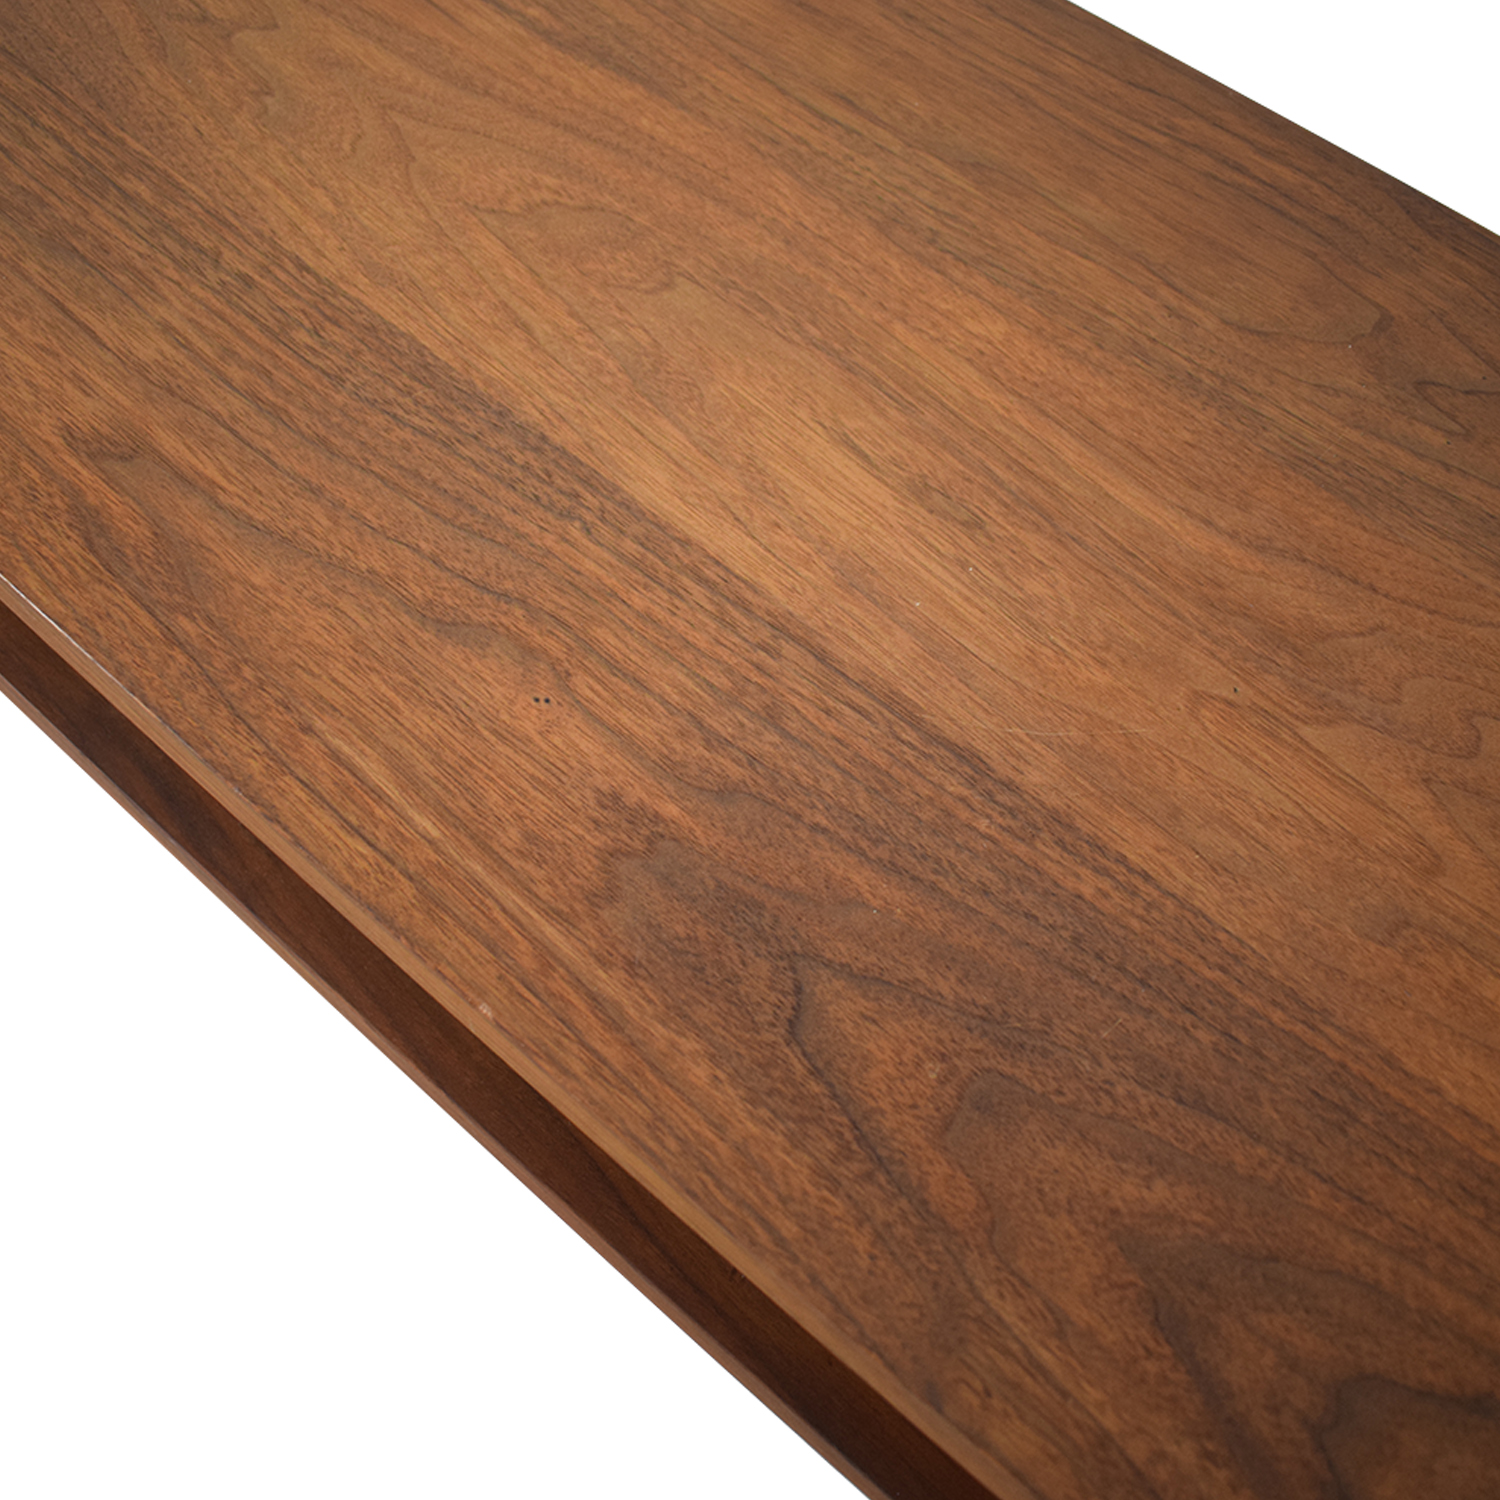 Custom Solid Walnut Coffee Table with Enclosed Shelf Space coupon